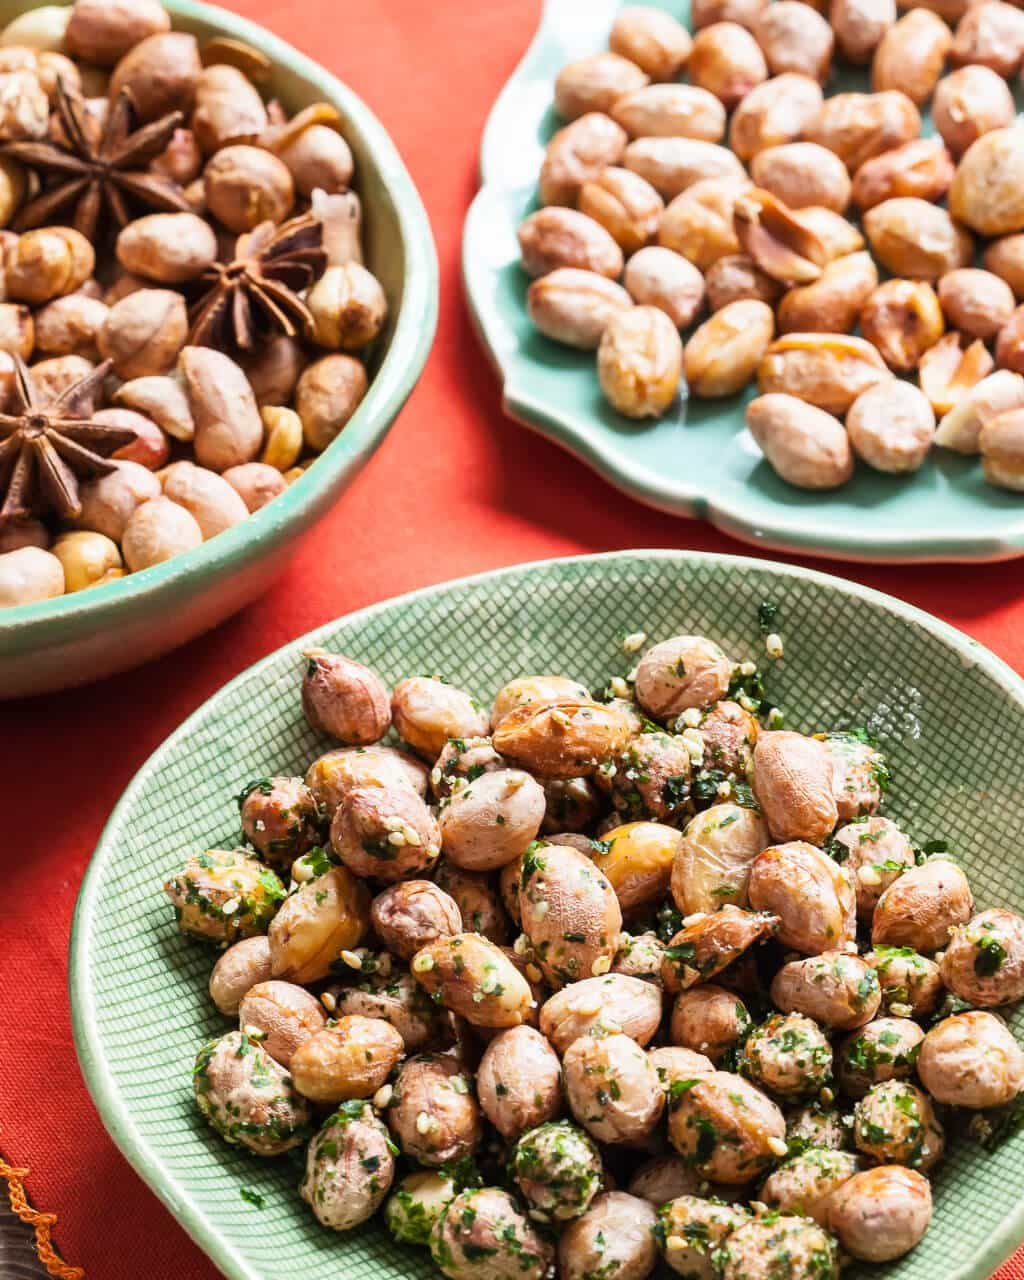 How to Make Crunchy Roasted Peanuts in the Microwave